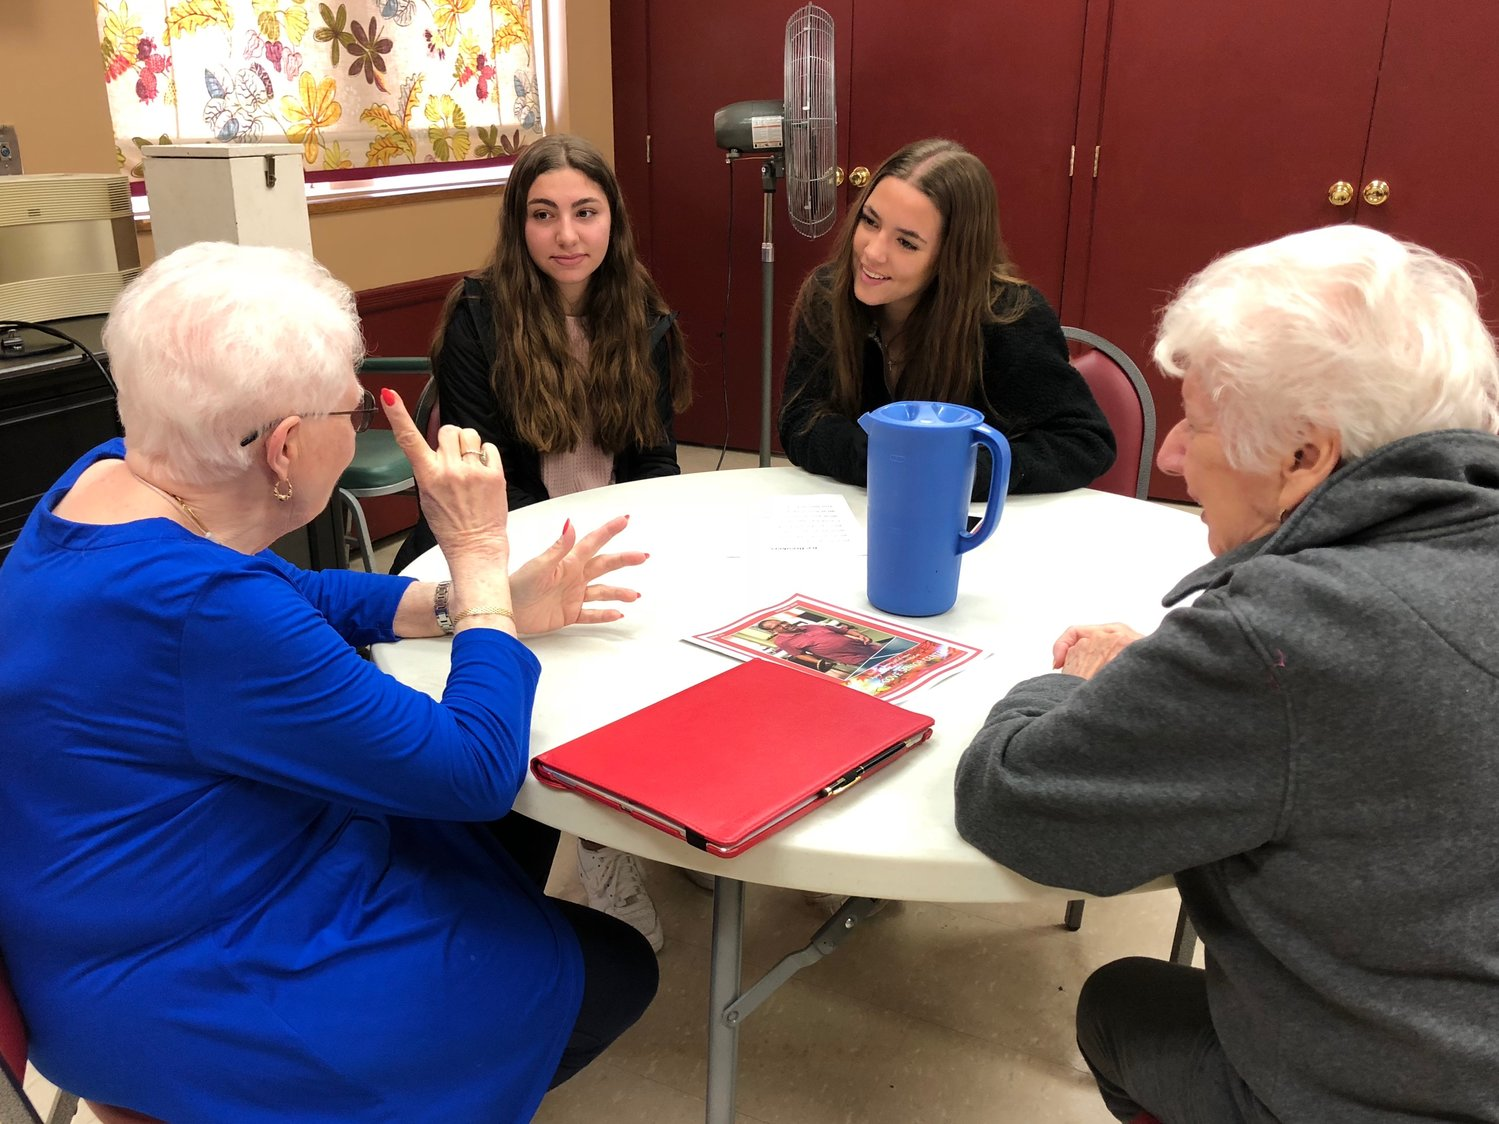 Sally DiMiceli, left, and Mimi Simonetti spoke with Friends Academy students Anastasia Kazanas and Ally Grella at an intergenerational program at the Glen Cove Senior Center.